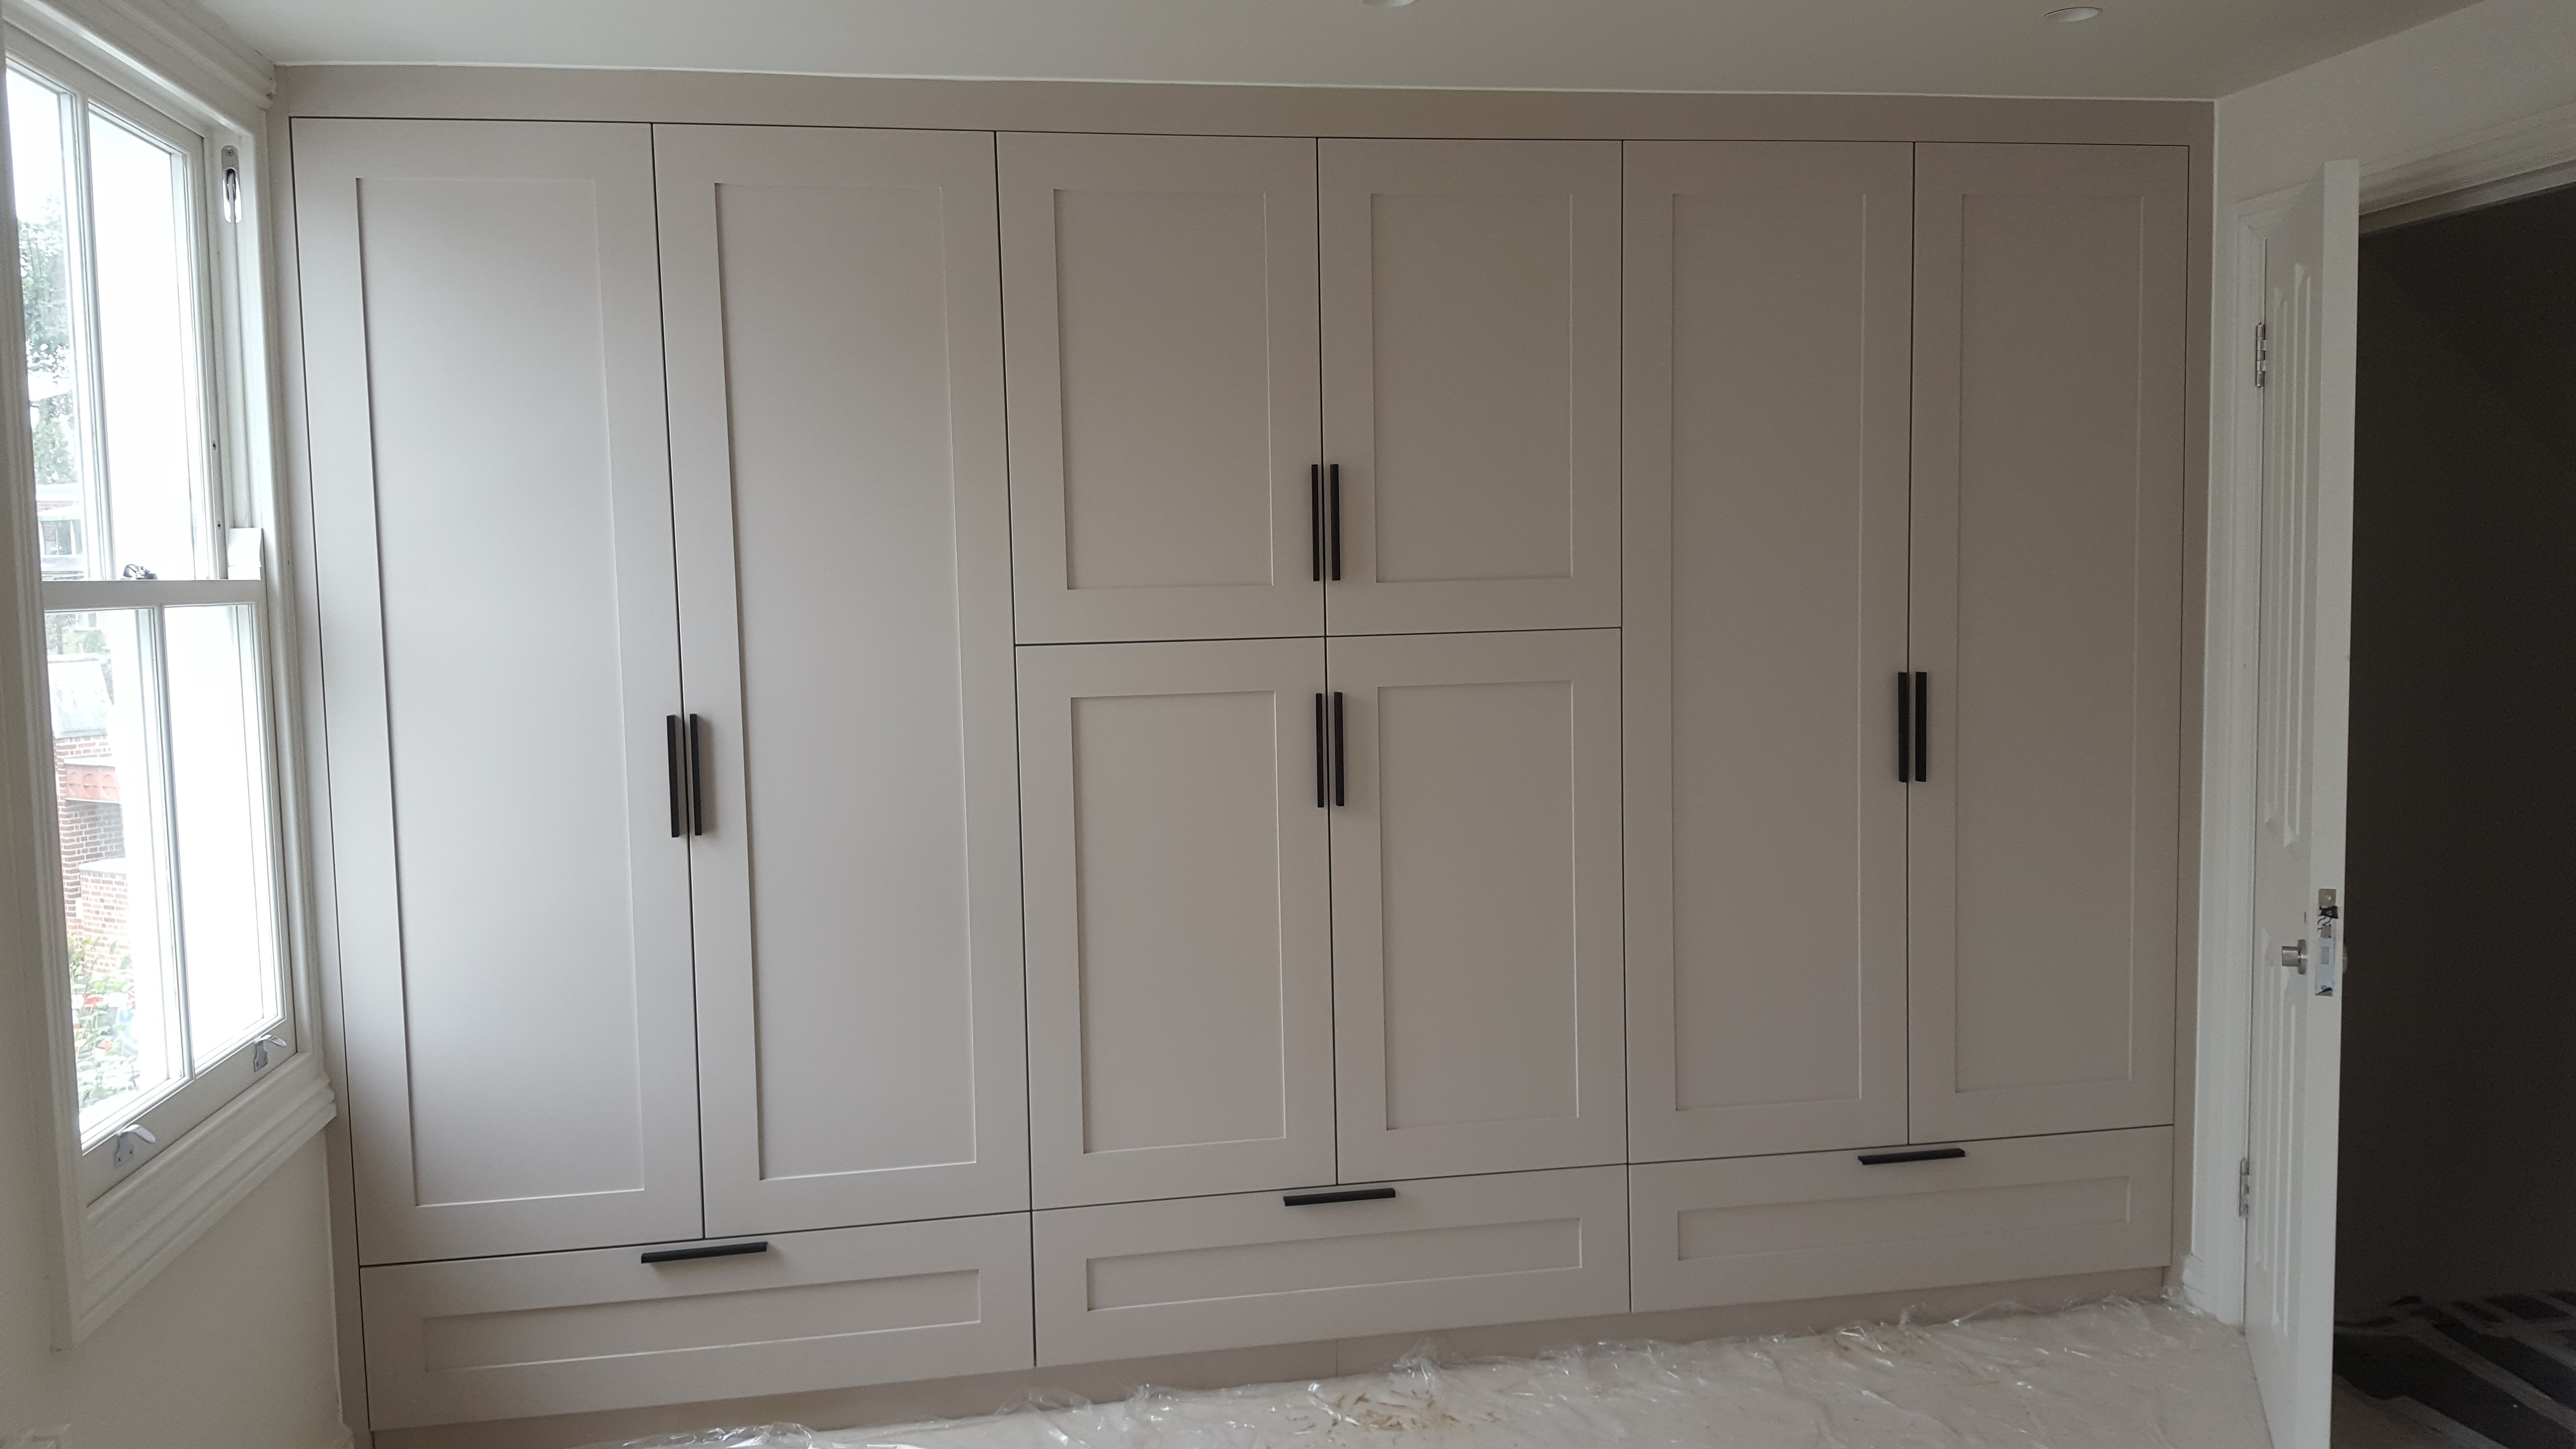 Bespoke Wardrobe Fitted Bedroom Wardrobe Clive